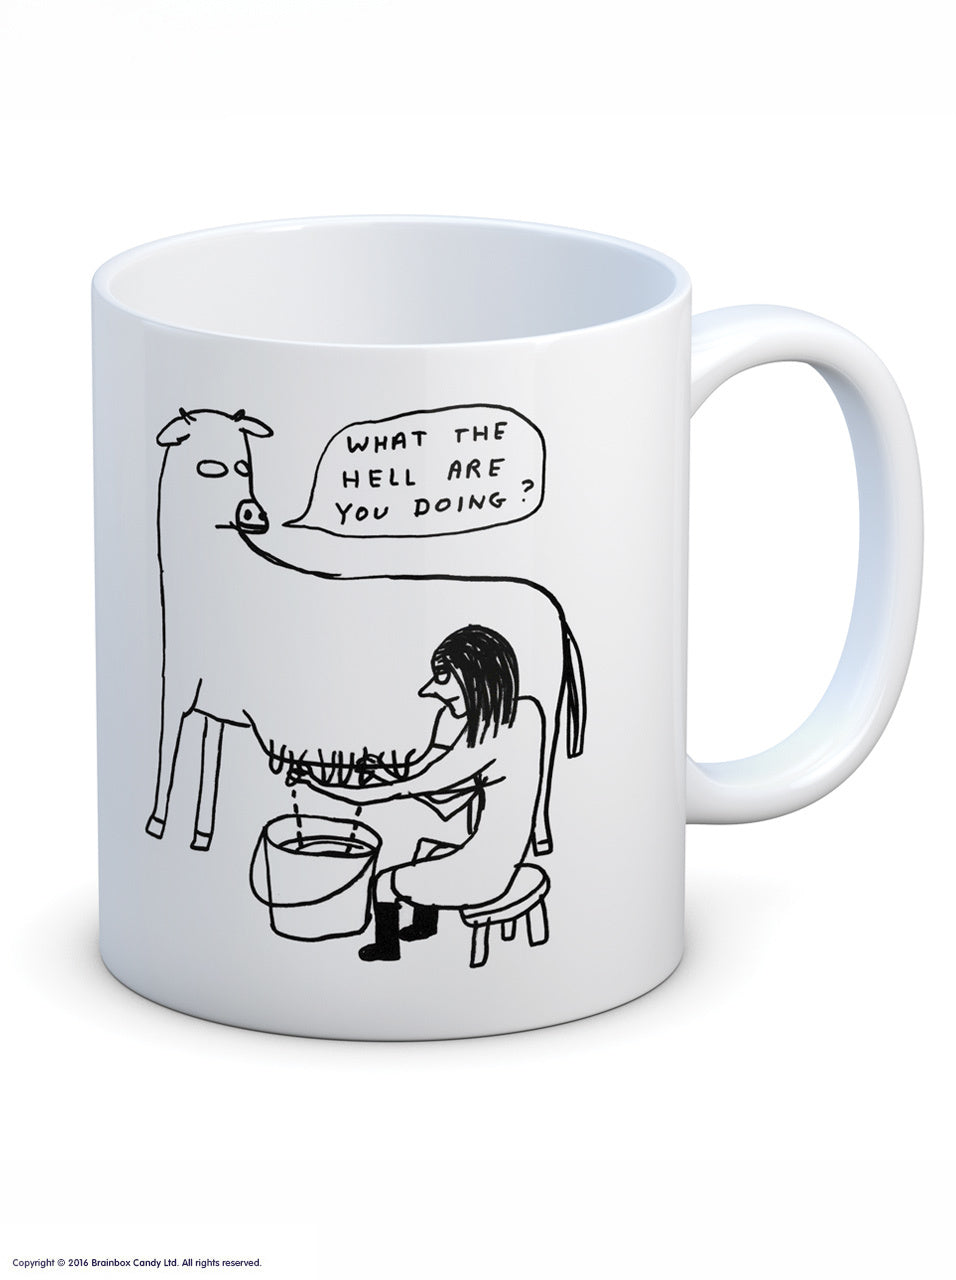 David Shrigley Mugs